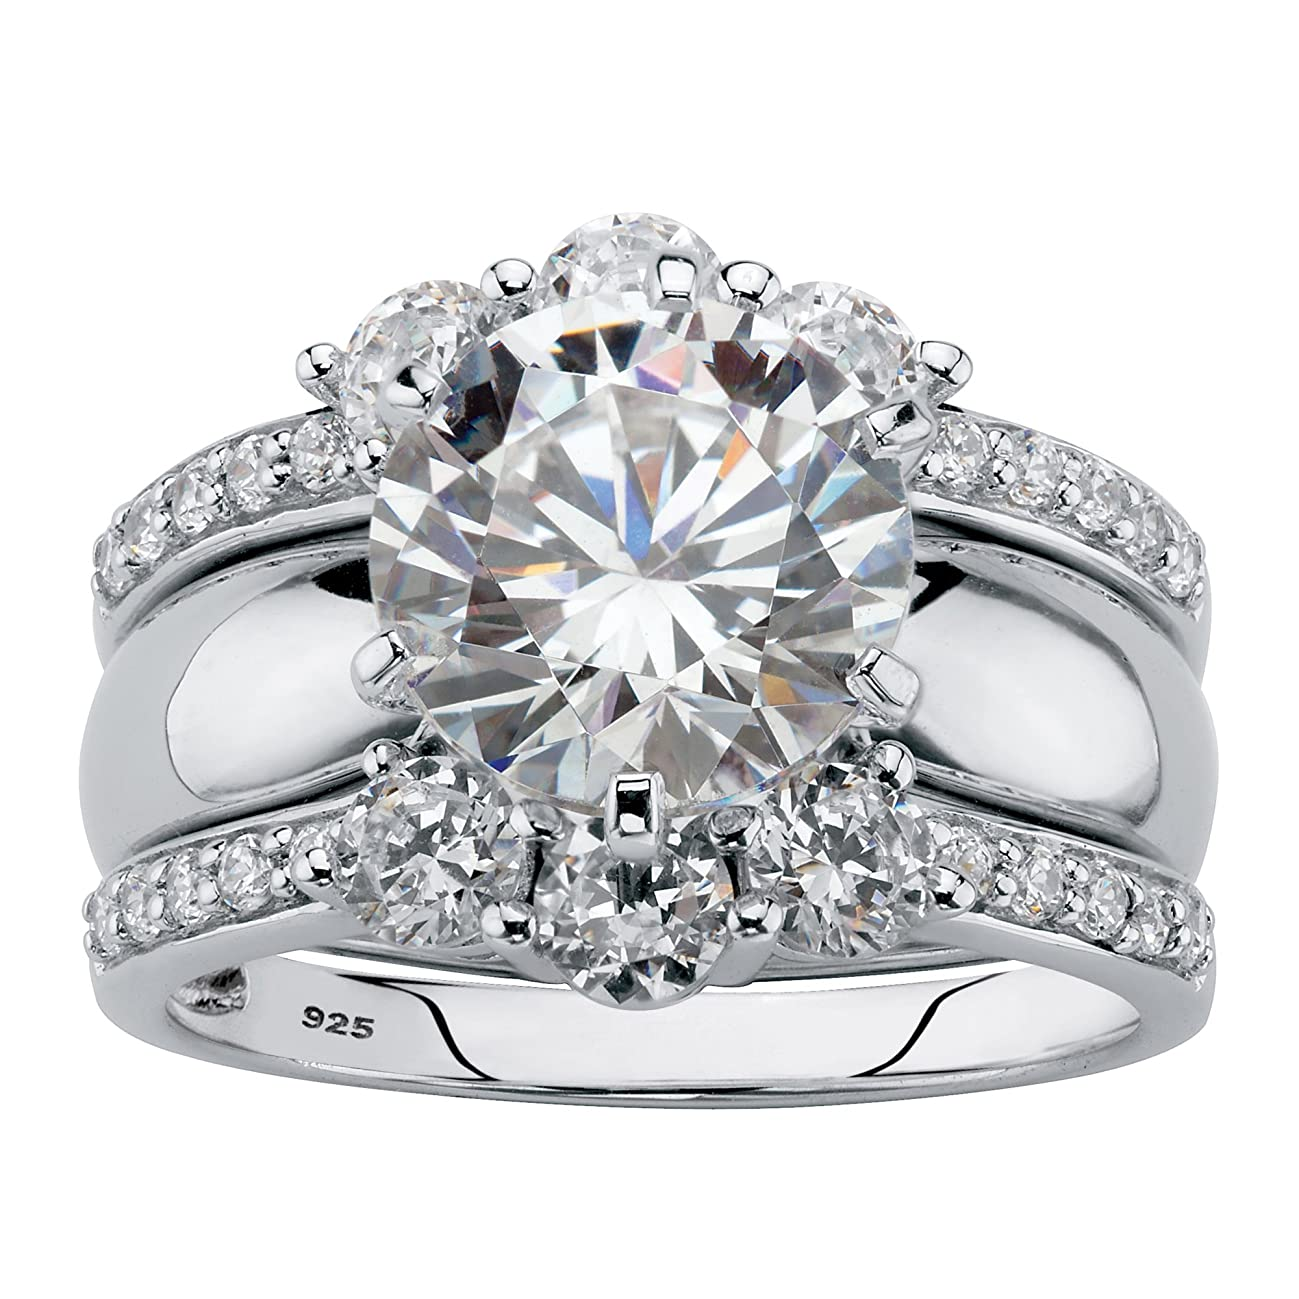 Platinum over Sterling Silver Round Cubic Zirconia Jacket Wedding Ring Set